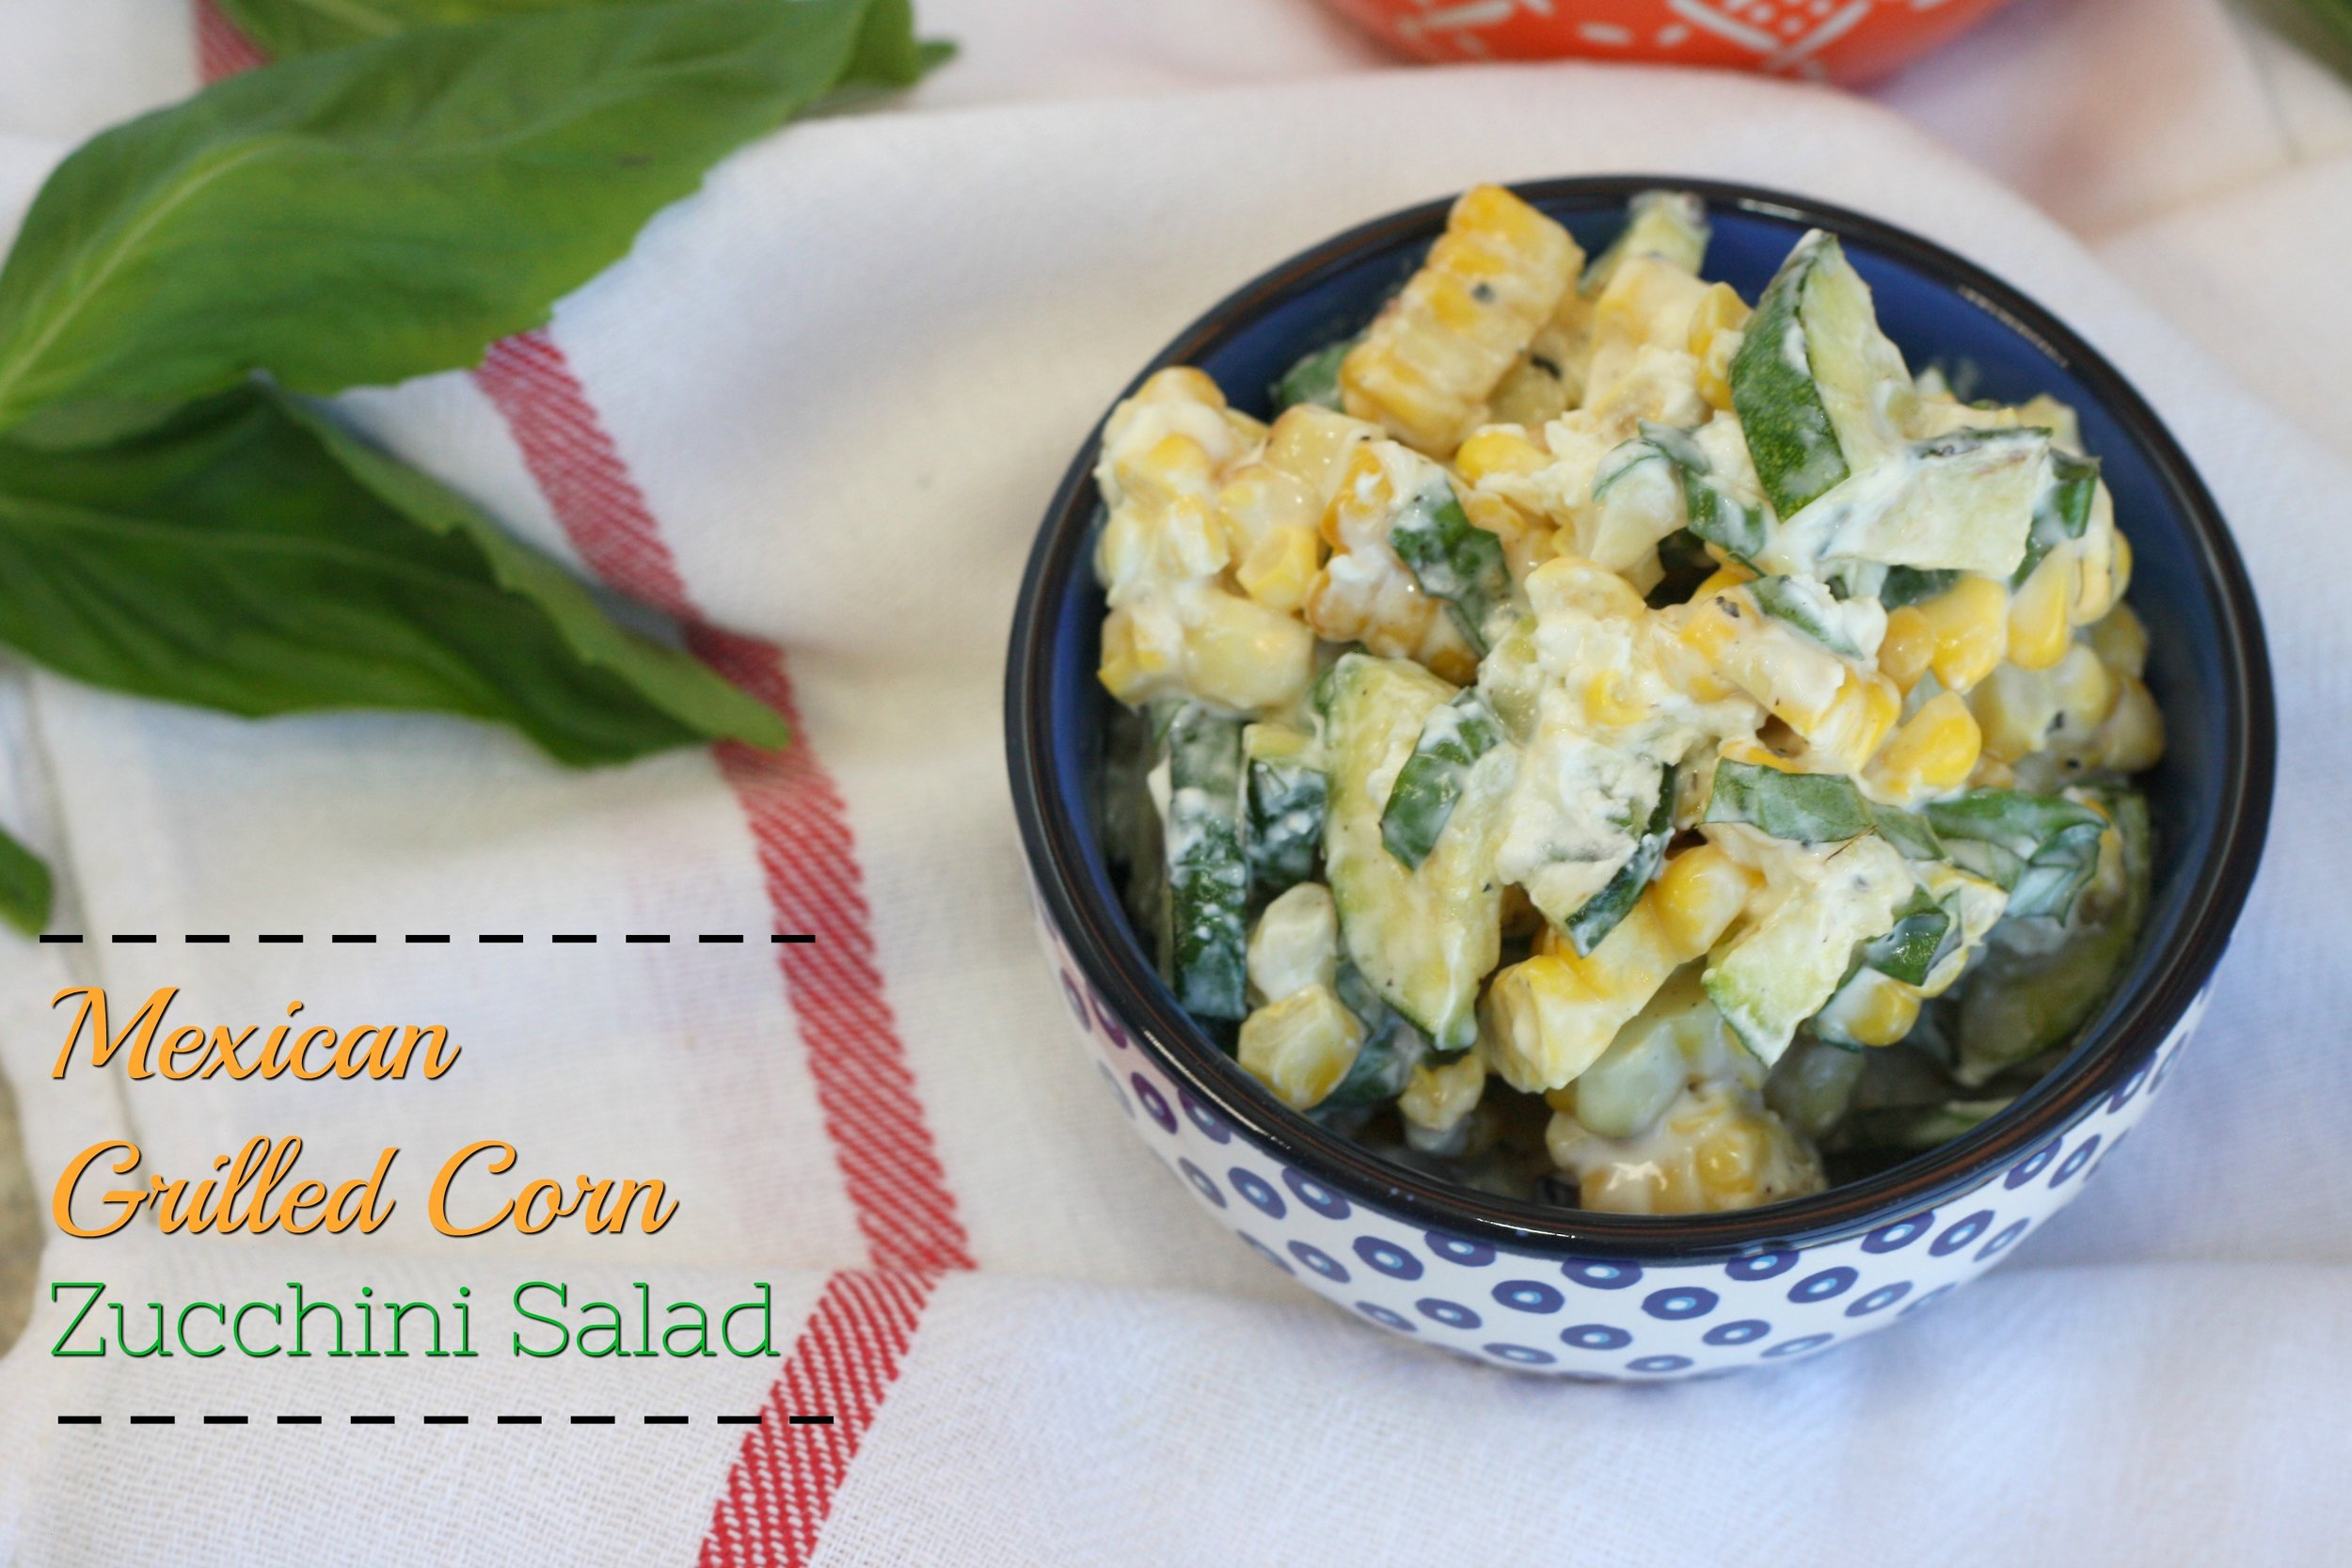 Mexican Grilled Zucchini Salad3-text.jpg